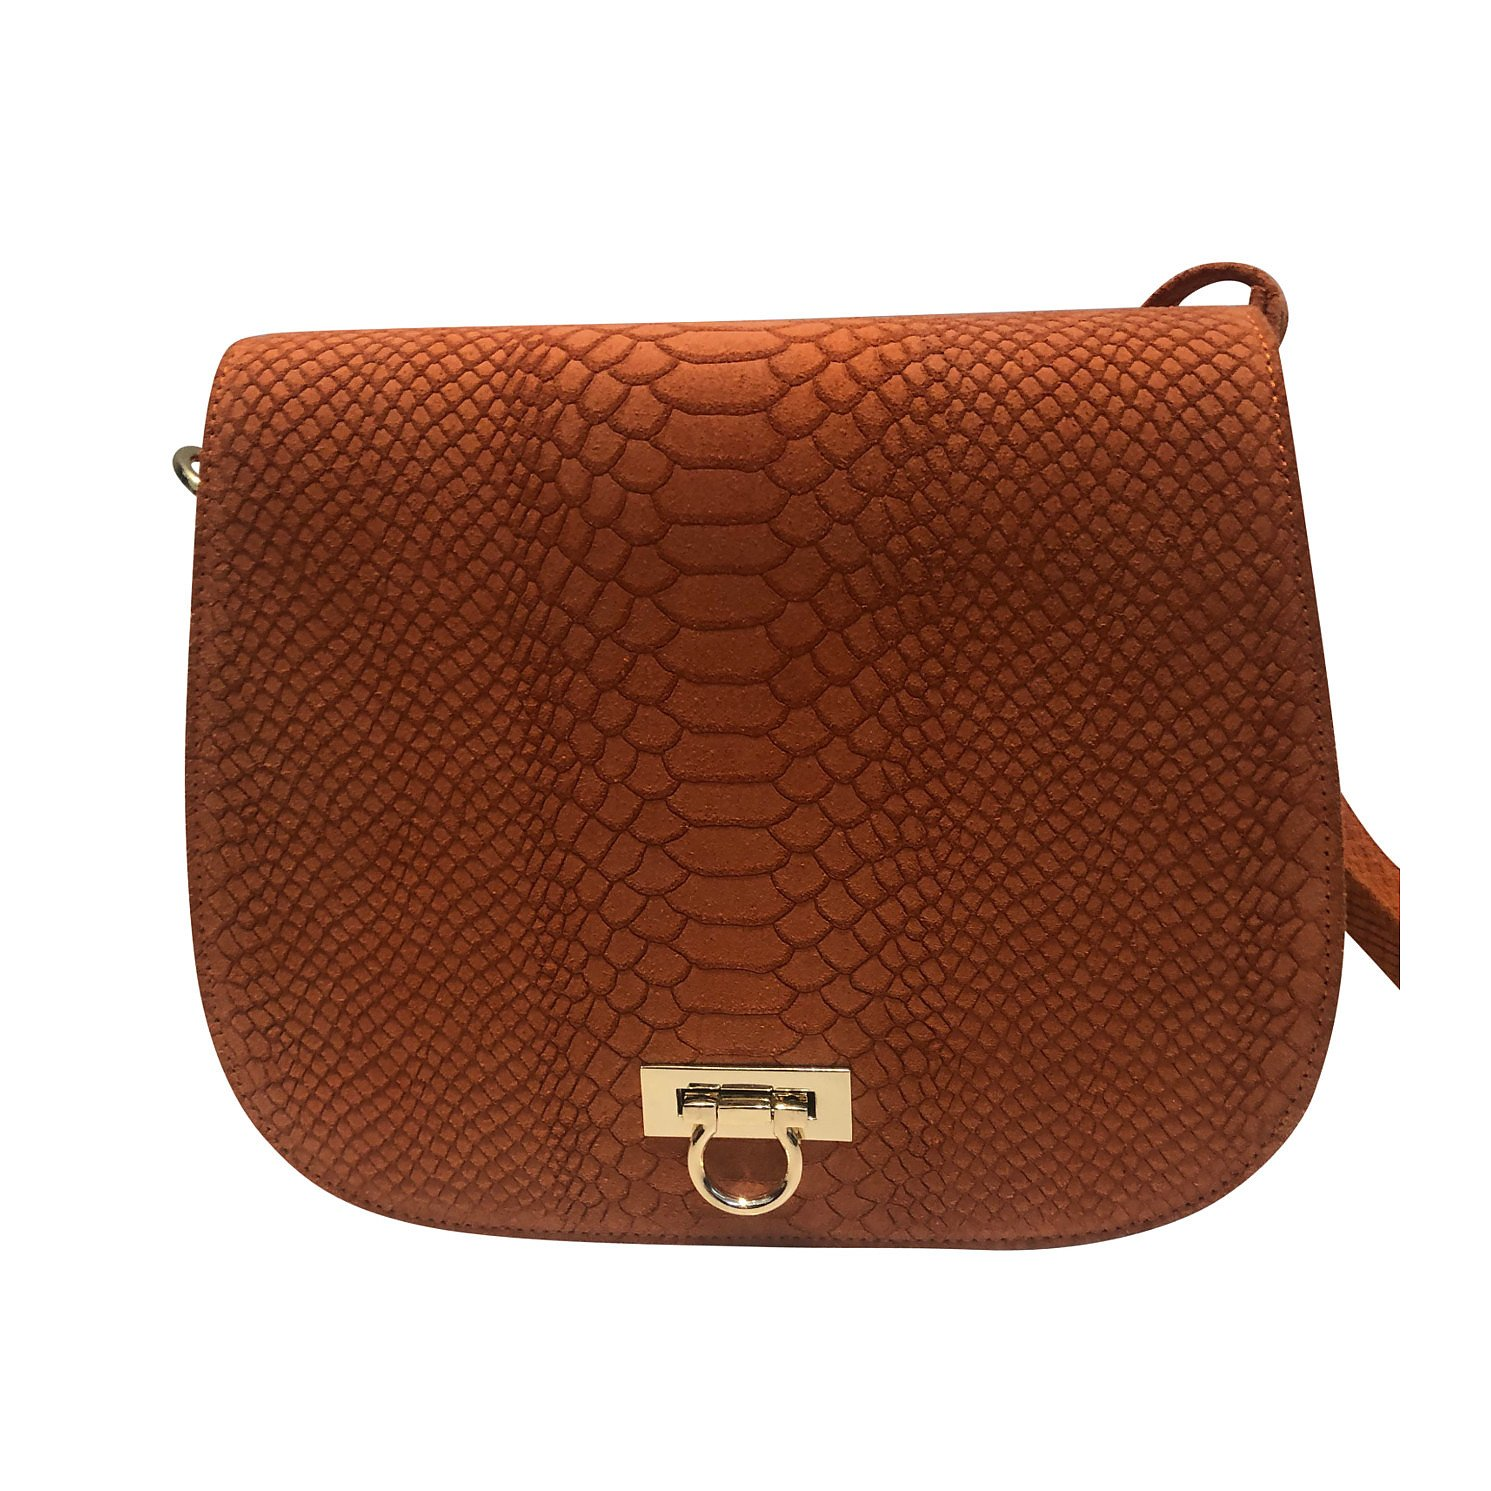 BBCO Croc-Stamped Leather Bag